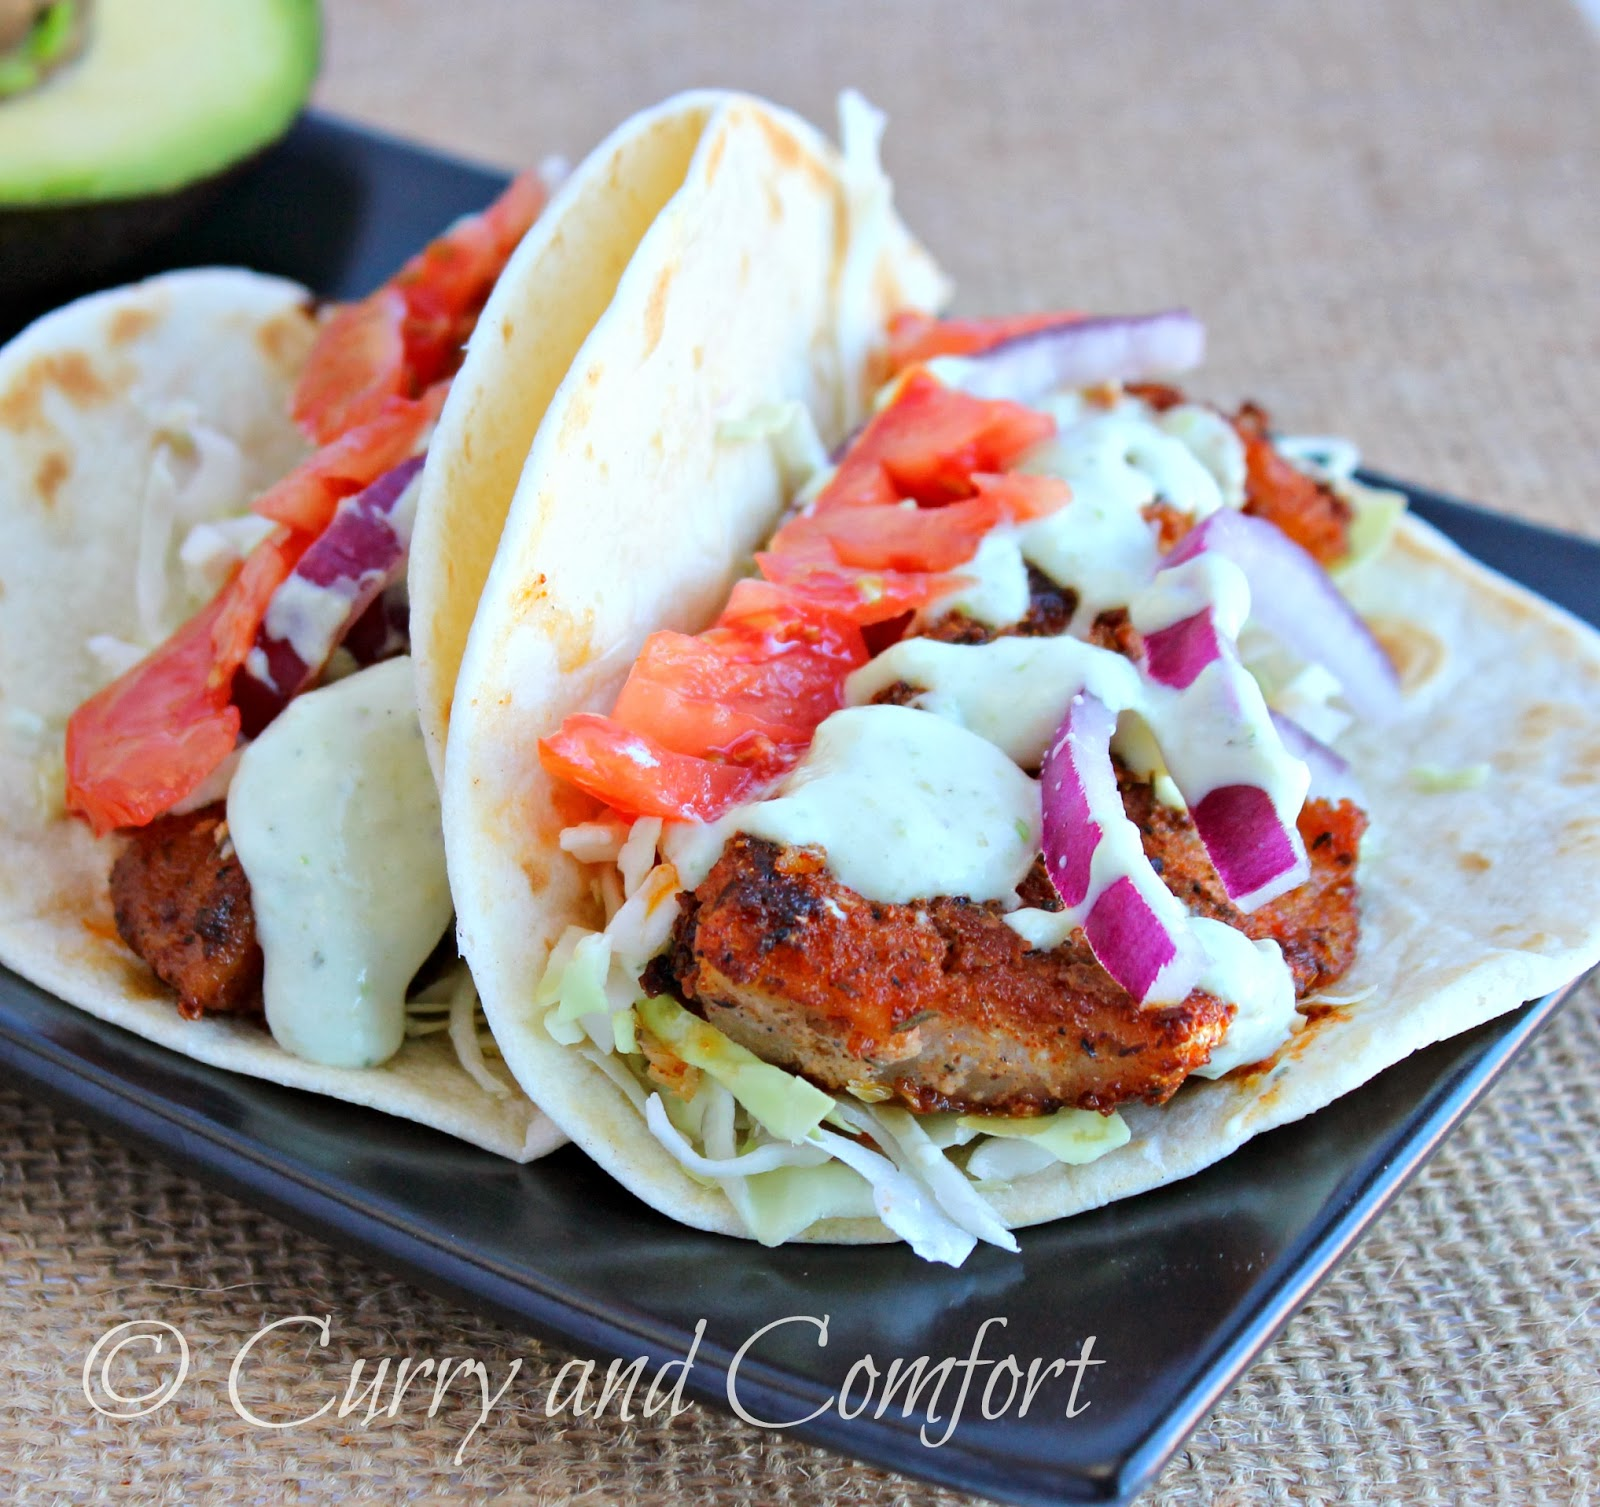 kitchen simmer avocado ranch sauce on cajun fish tacos